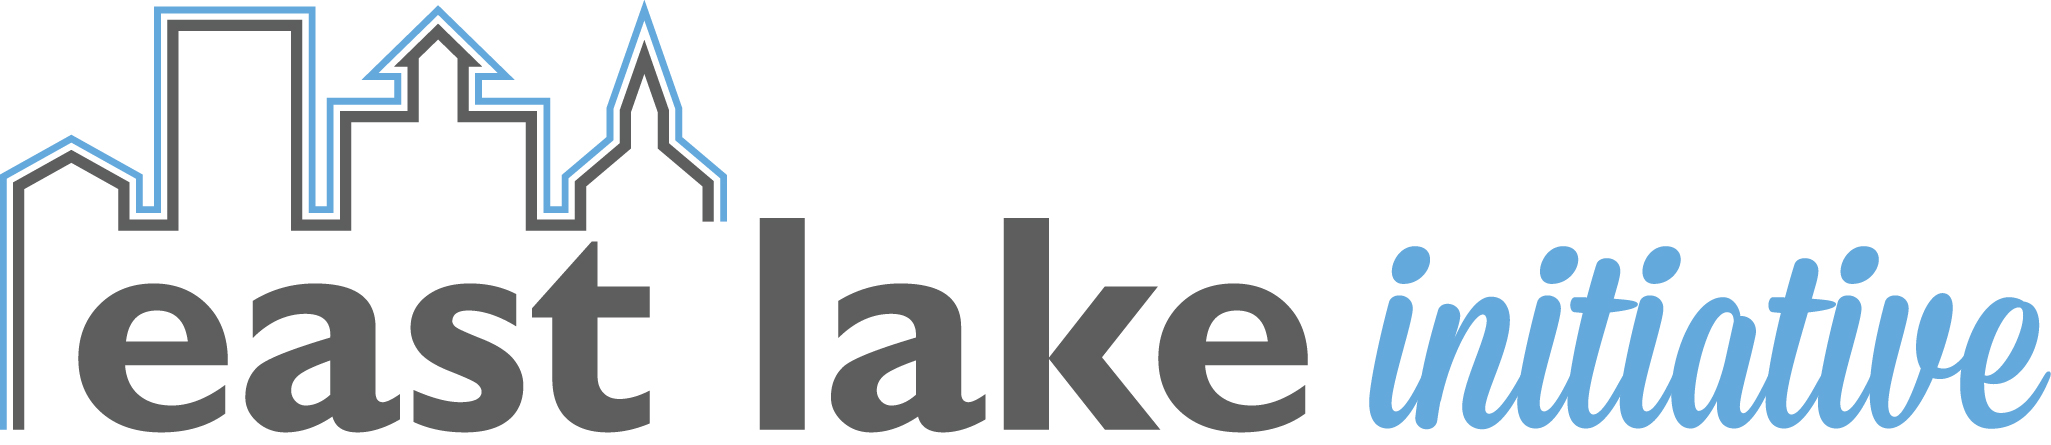 East Lake initiative logo